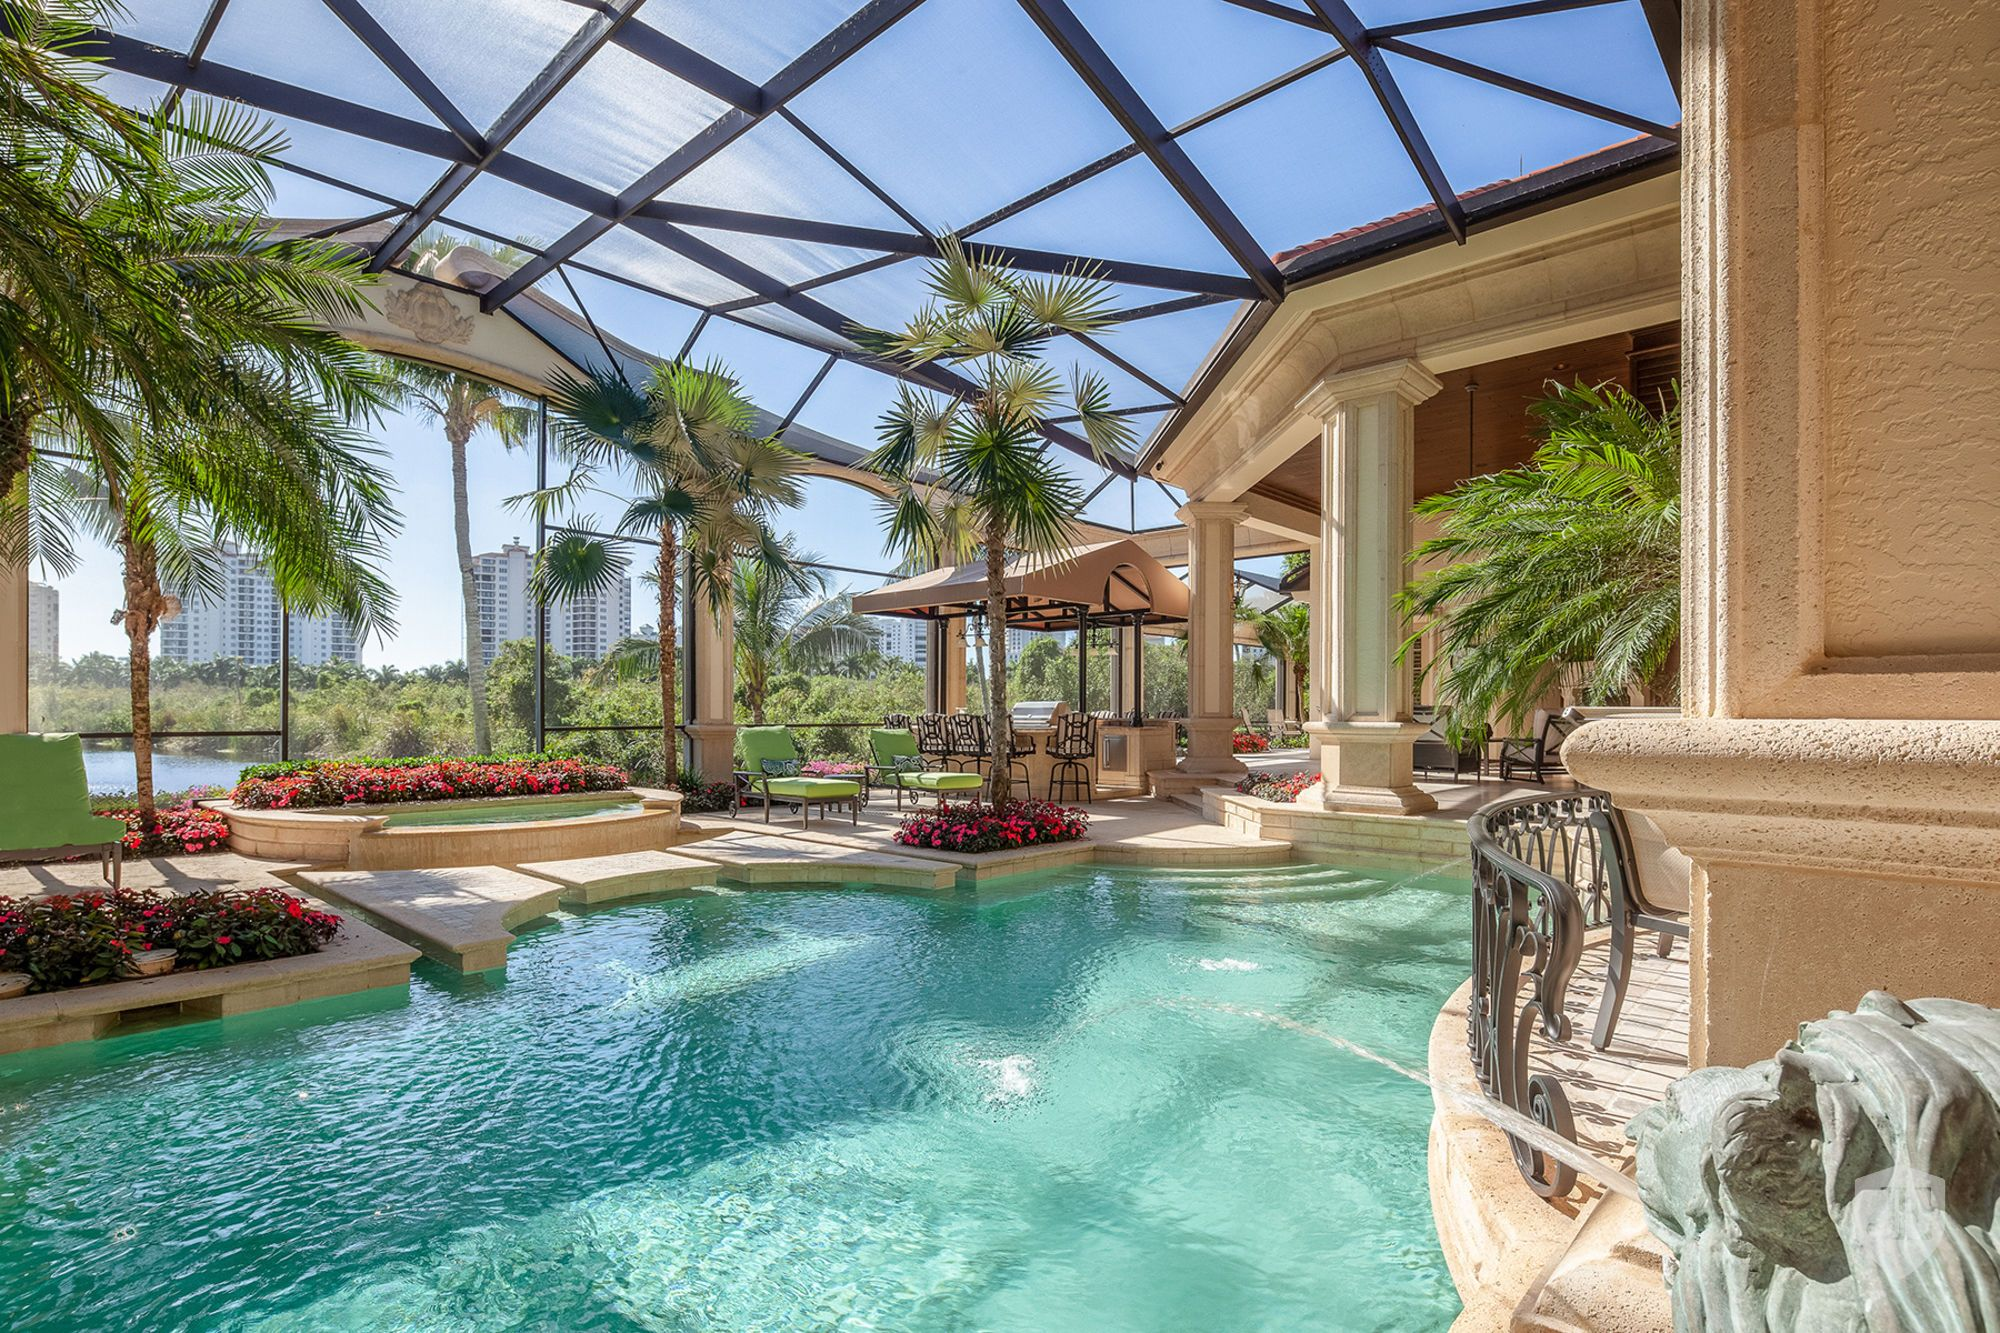 Pelican Bay Bay Colony Shores In Naples Fl United States For Sale On Jamesedition Indoor Outdoor Pool Estate Homes Naples Homes For Sale